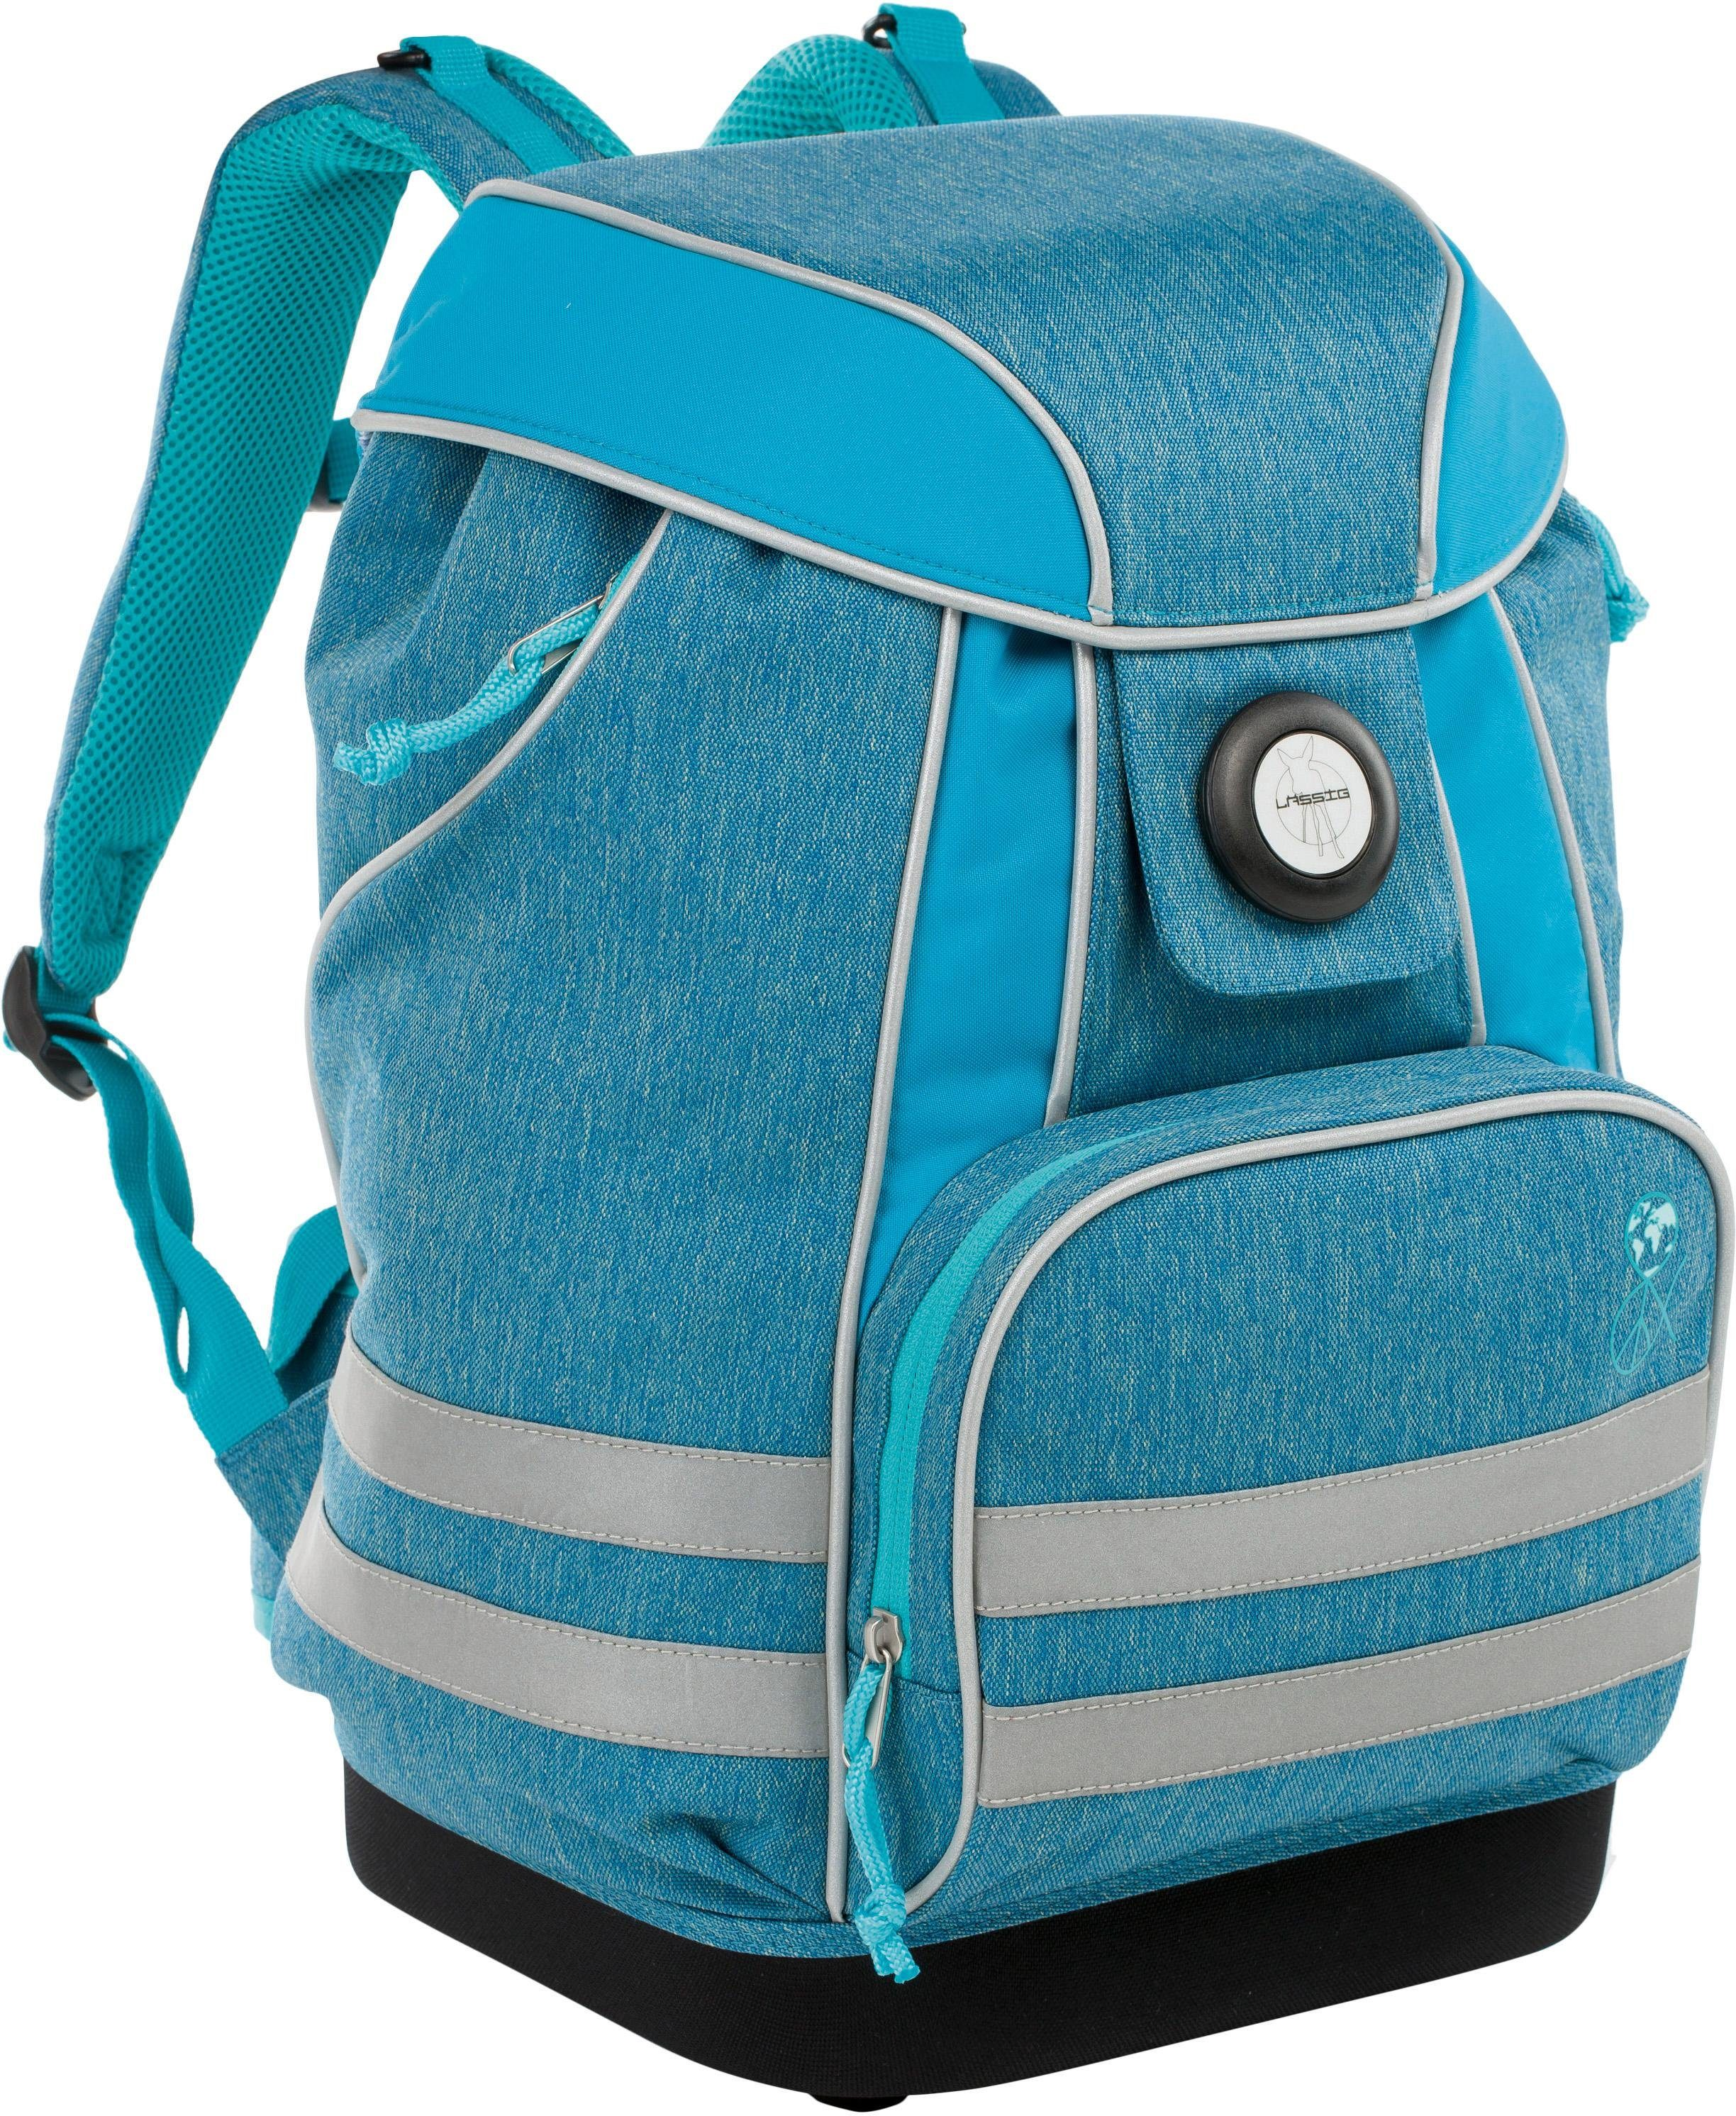 Lässig Schulrucksack, »4Kids School Bag, About Friends, Mélange Blue«